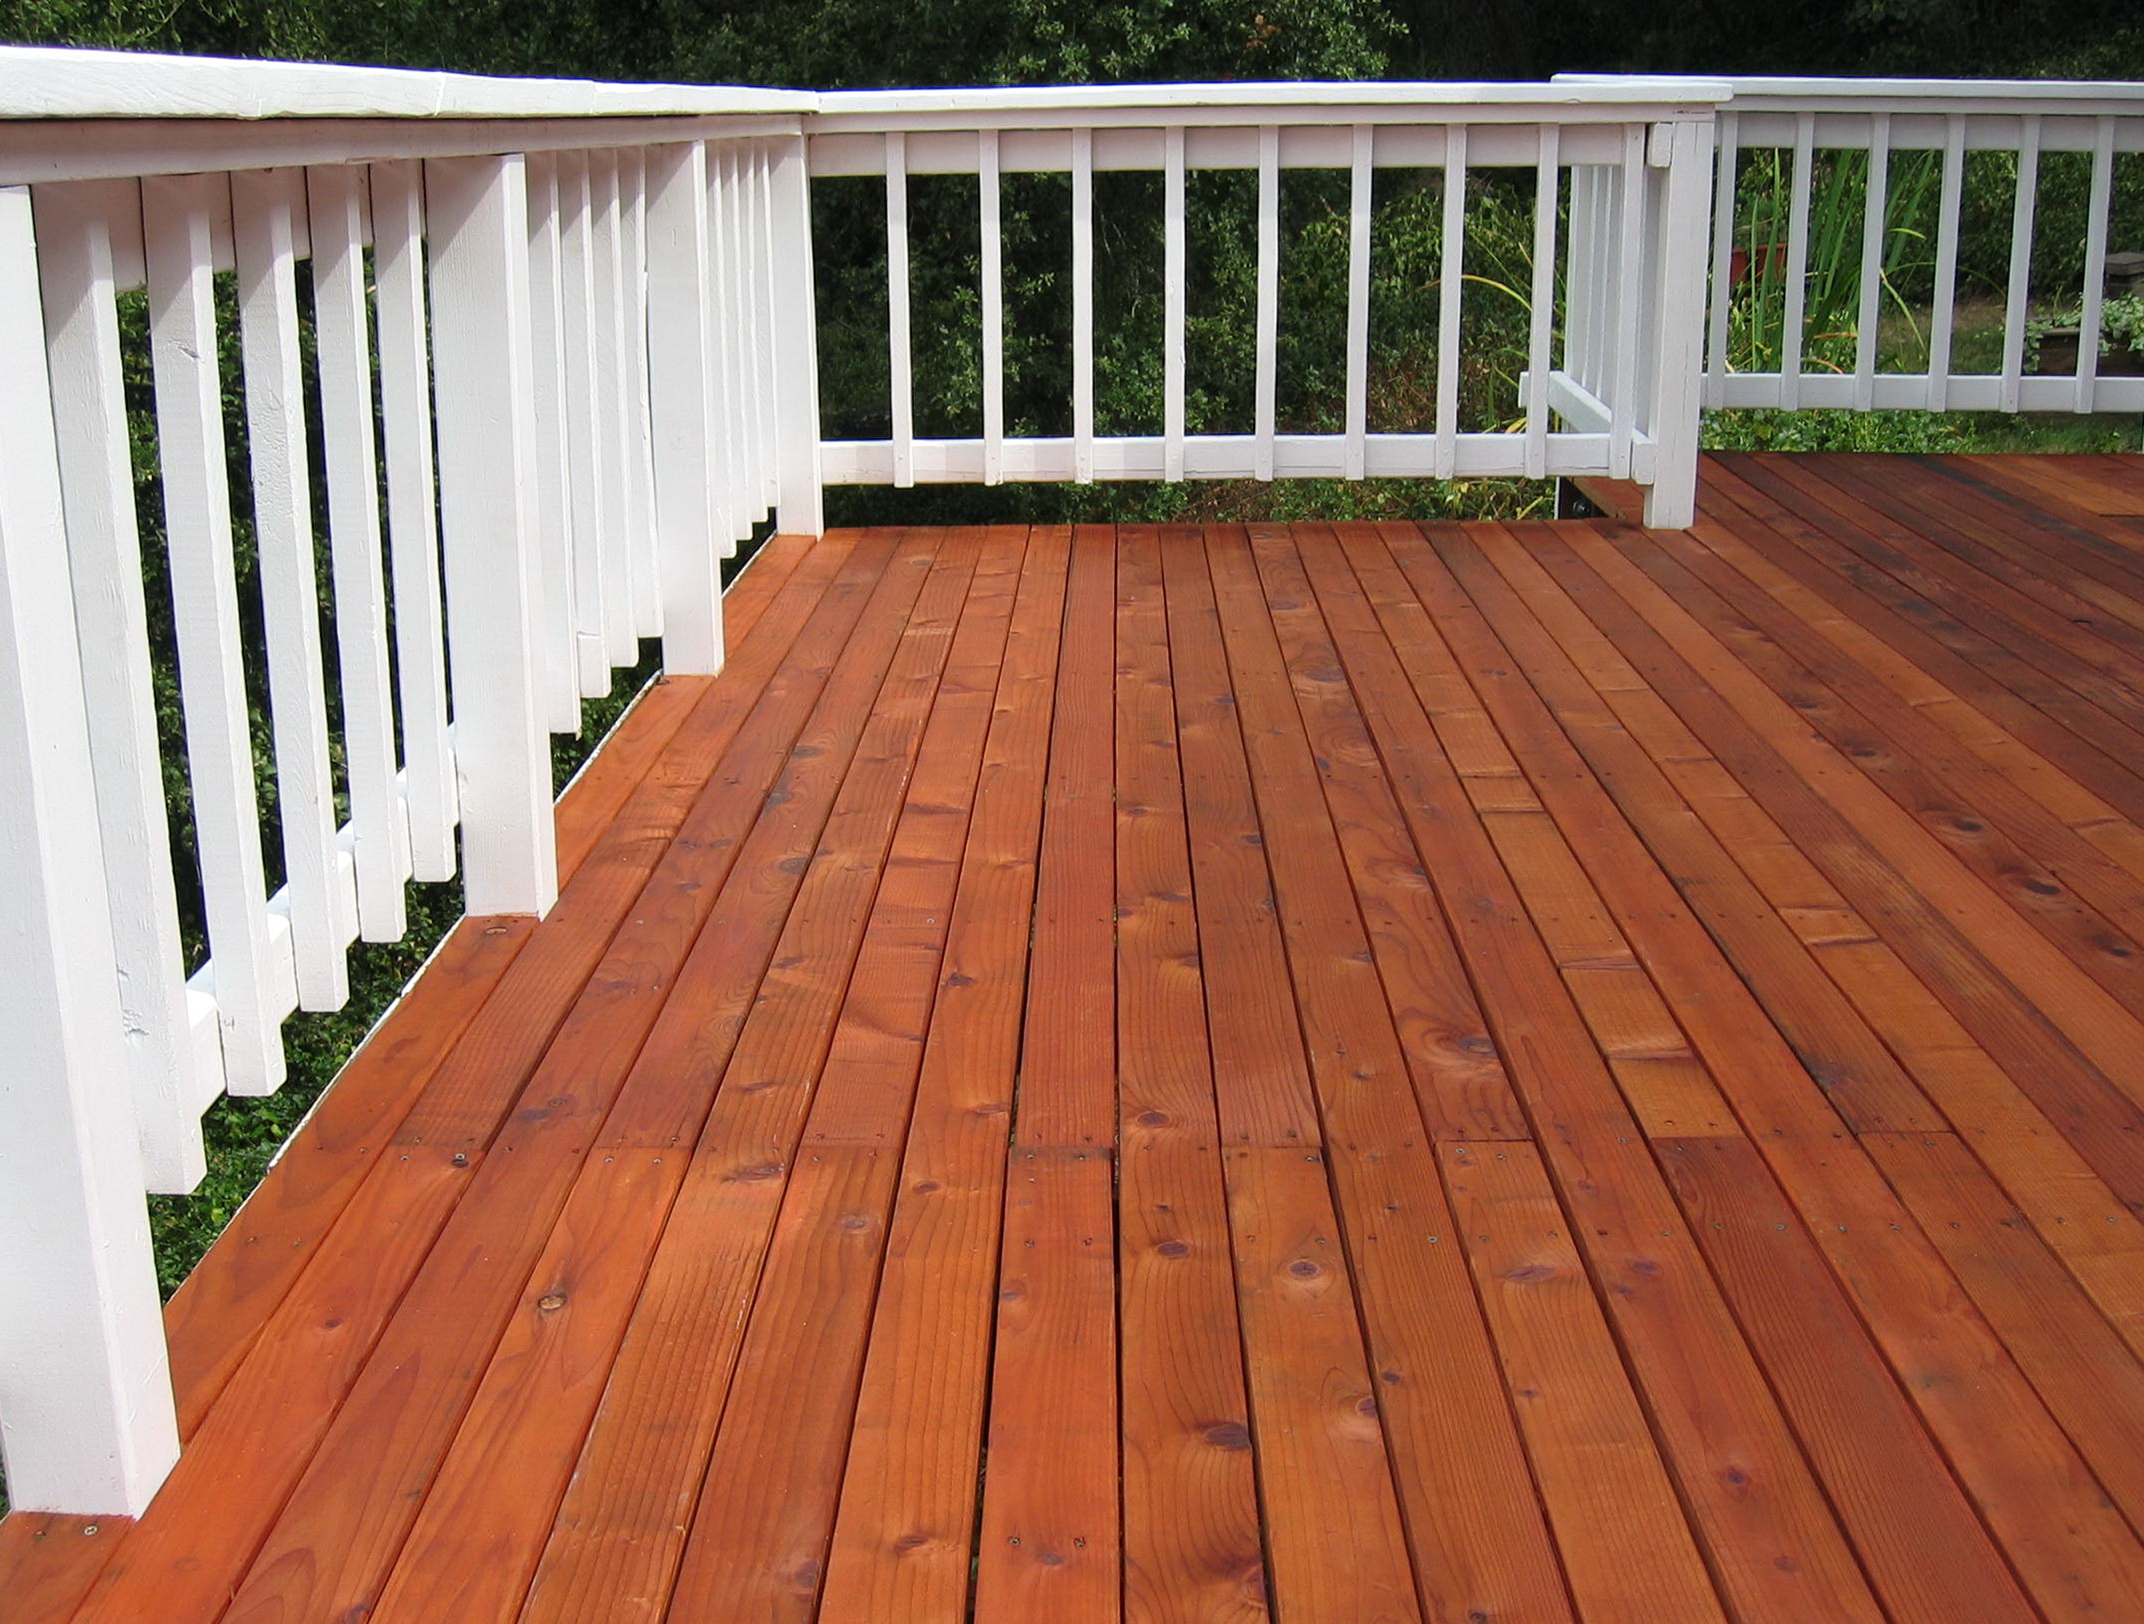 Lowes Deck Designer Won't Load